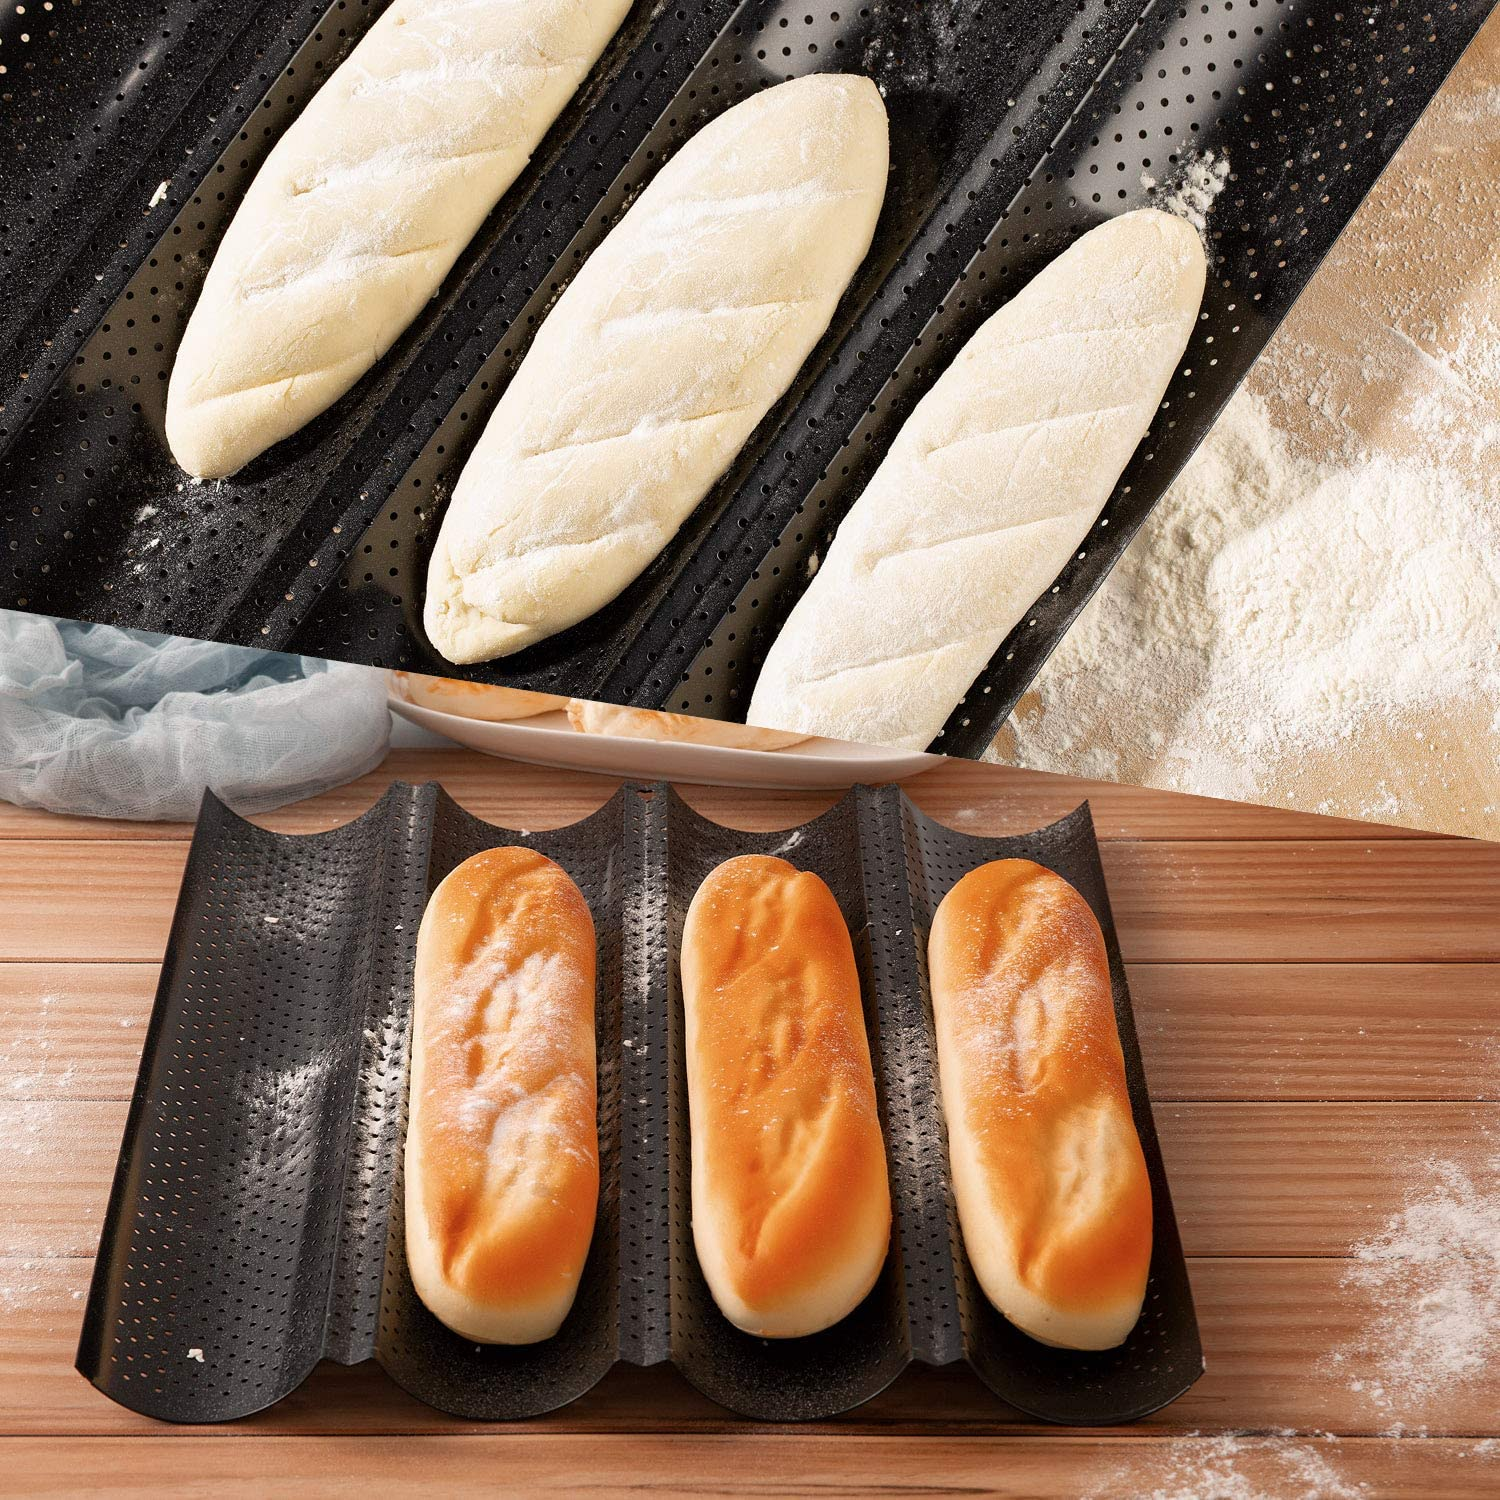 Perforated Baguette Baking Tray Non Stick French Stick Baking Molds Pan 15 x 13 for French Bread Baking 4 Wave Loaves Loaf Bake